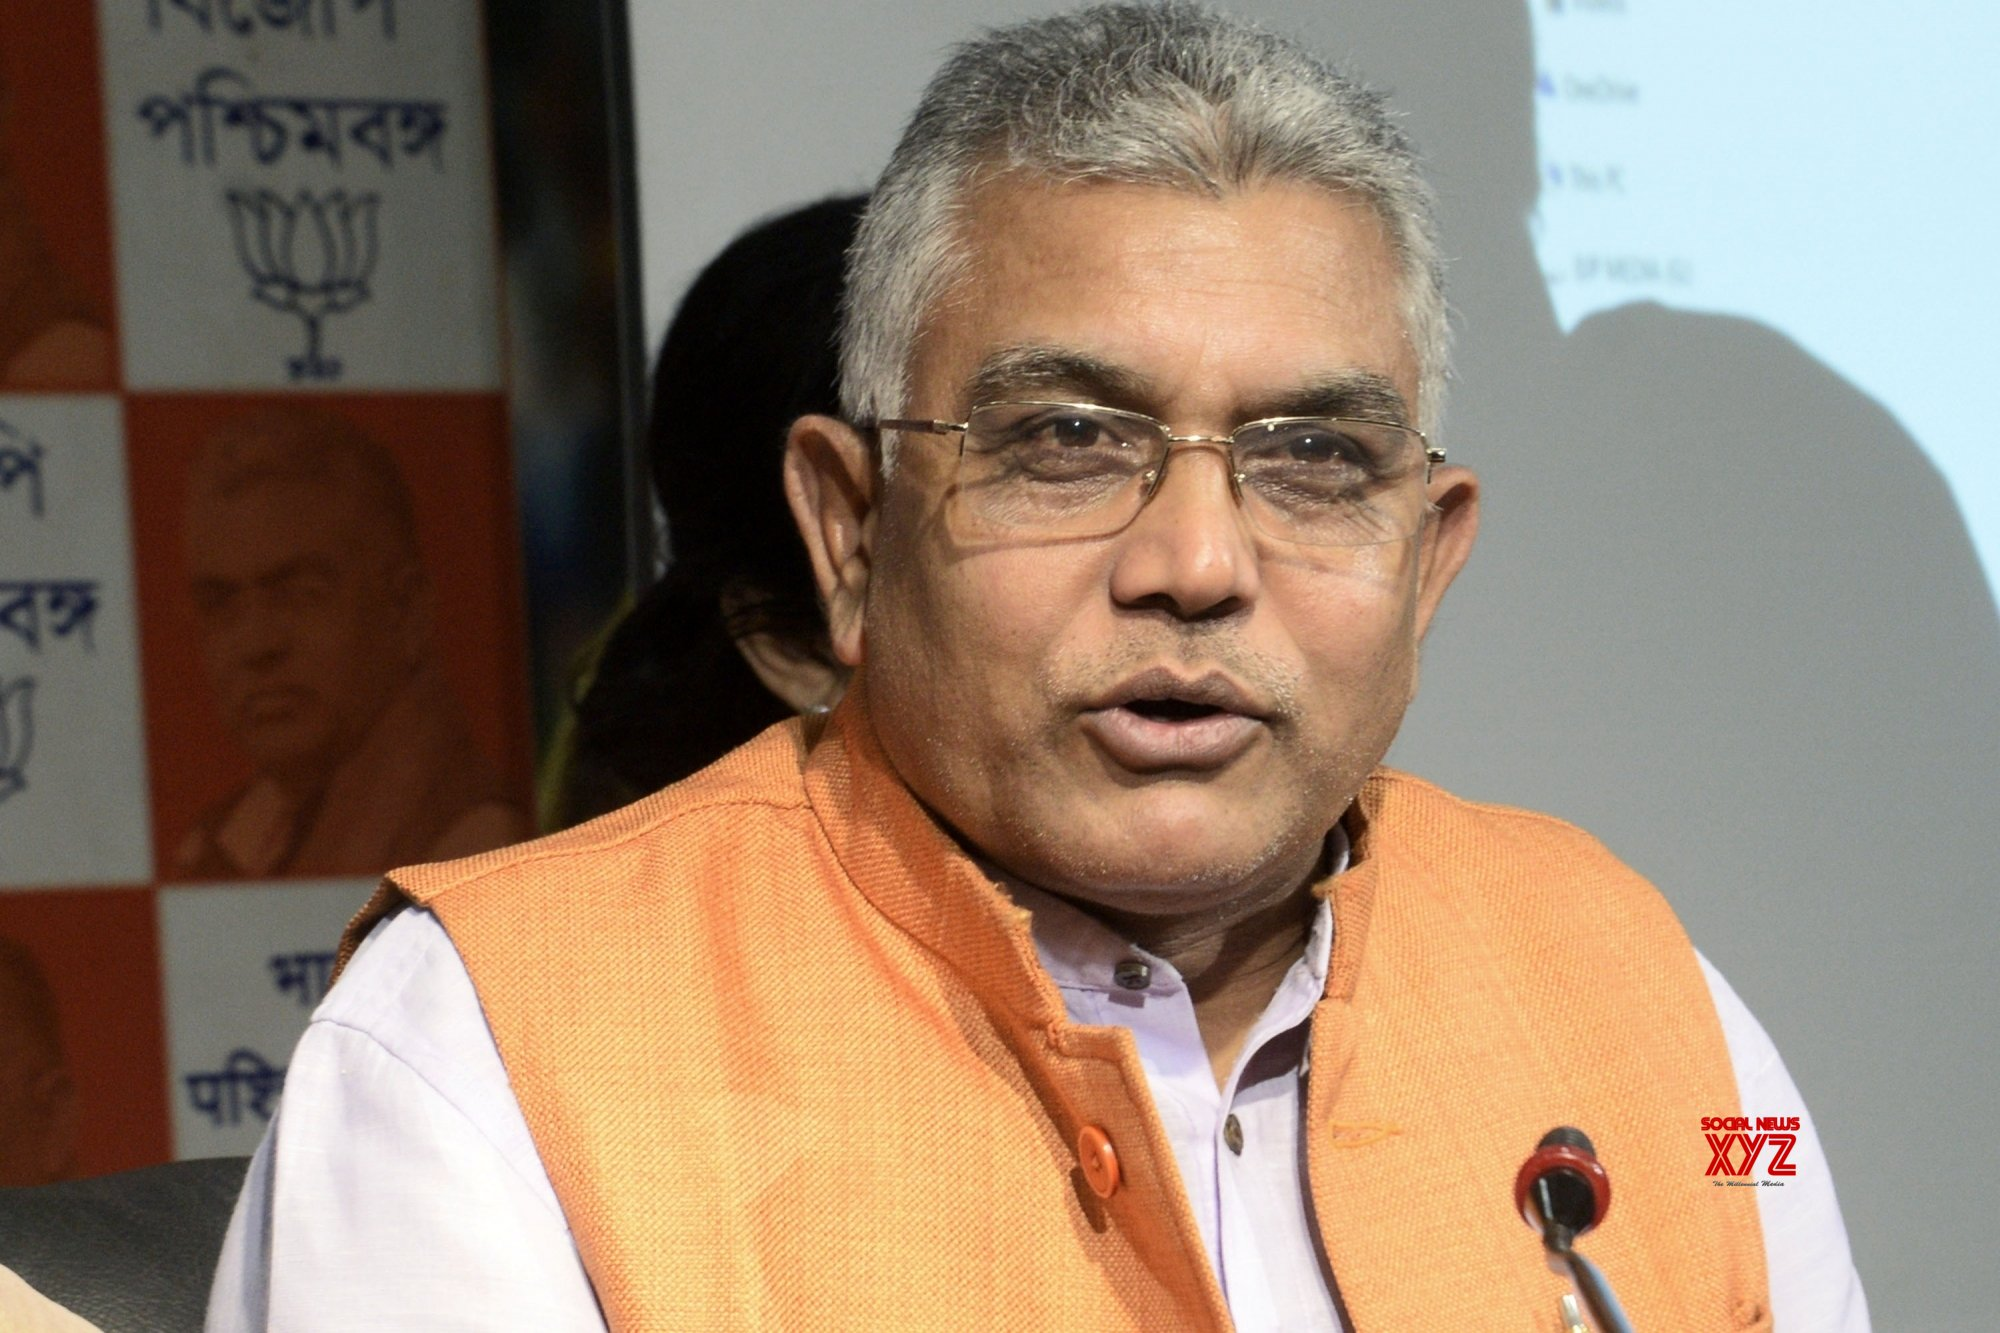 Infiltration, security key issues: Bengal BJP chief